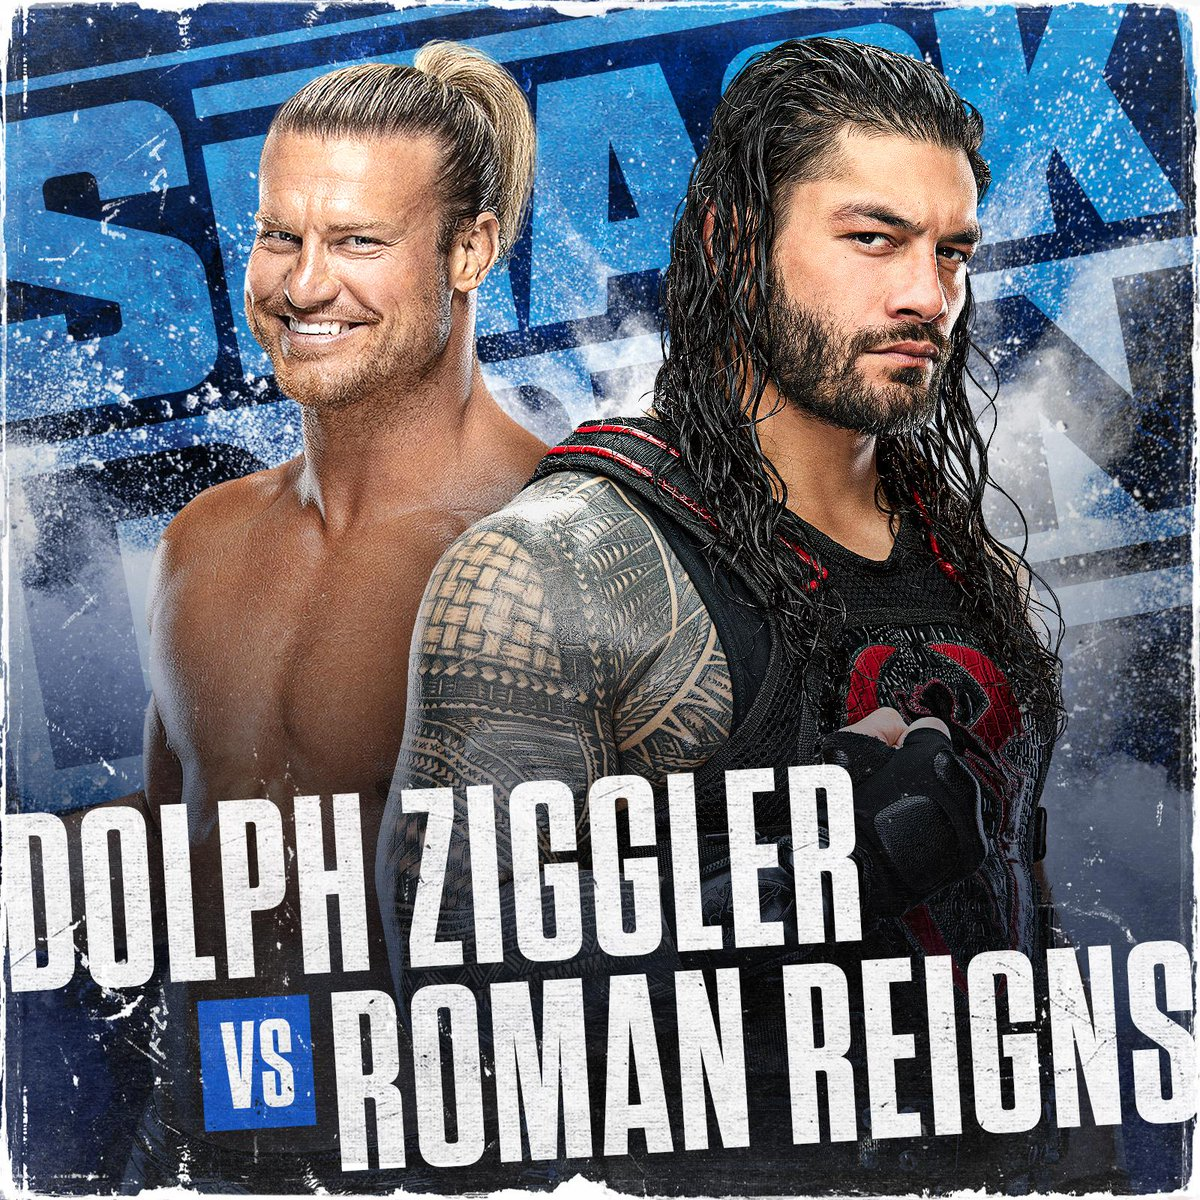 It's BIG DOG vs. SHOW-OFF tonight on #SmackDown in just ONE HOUR on @FOXTV!   Who ya got: @WWERomanReigns or @HEELZiggler?